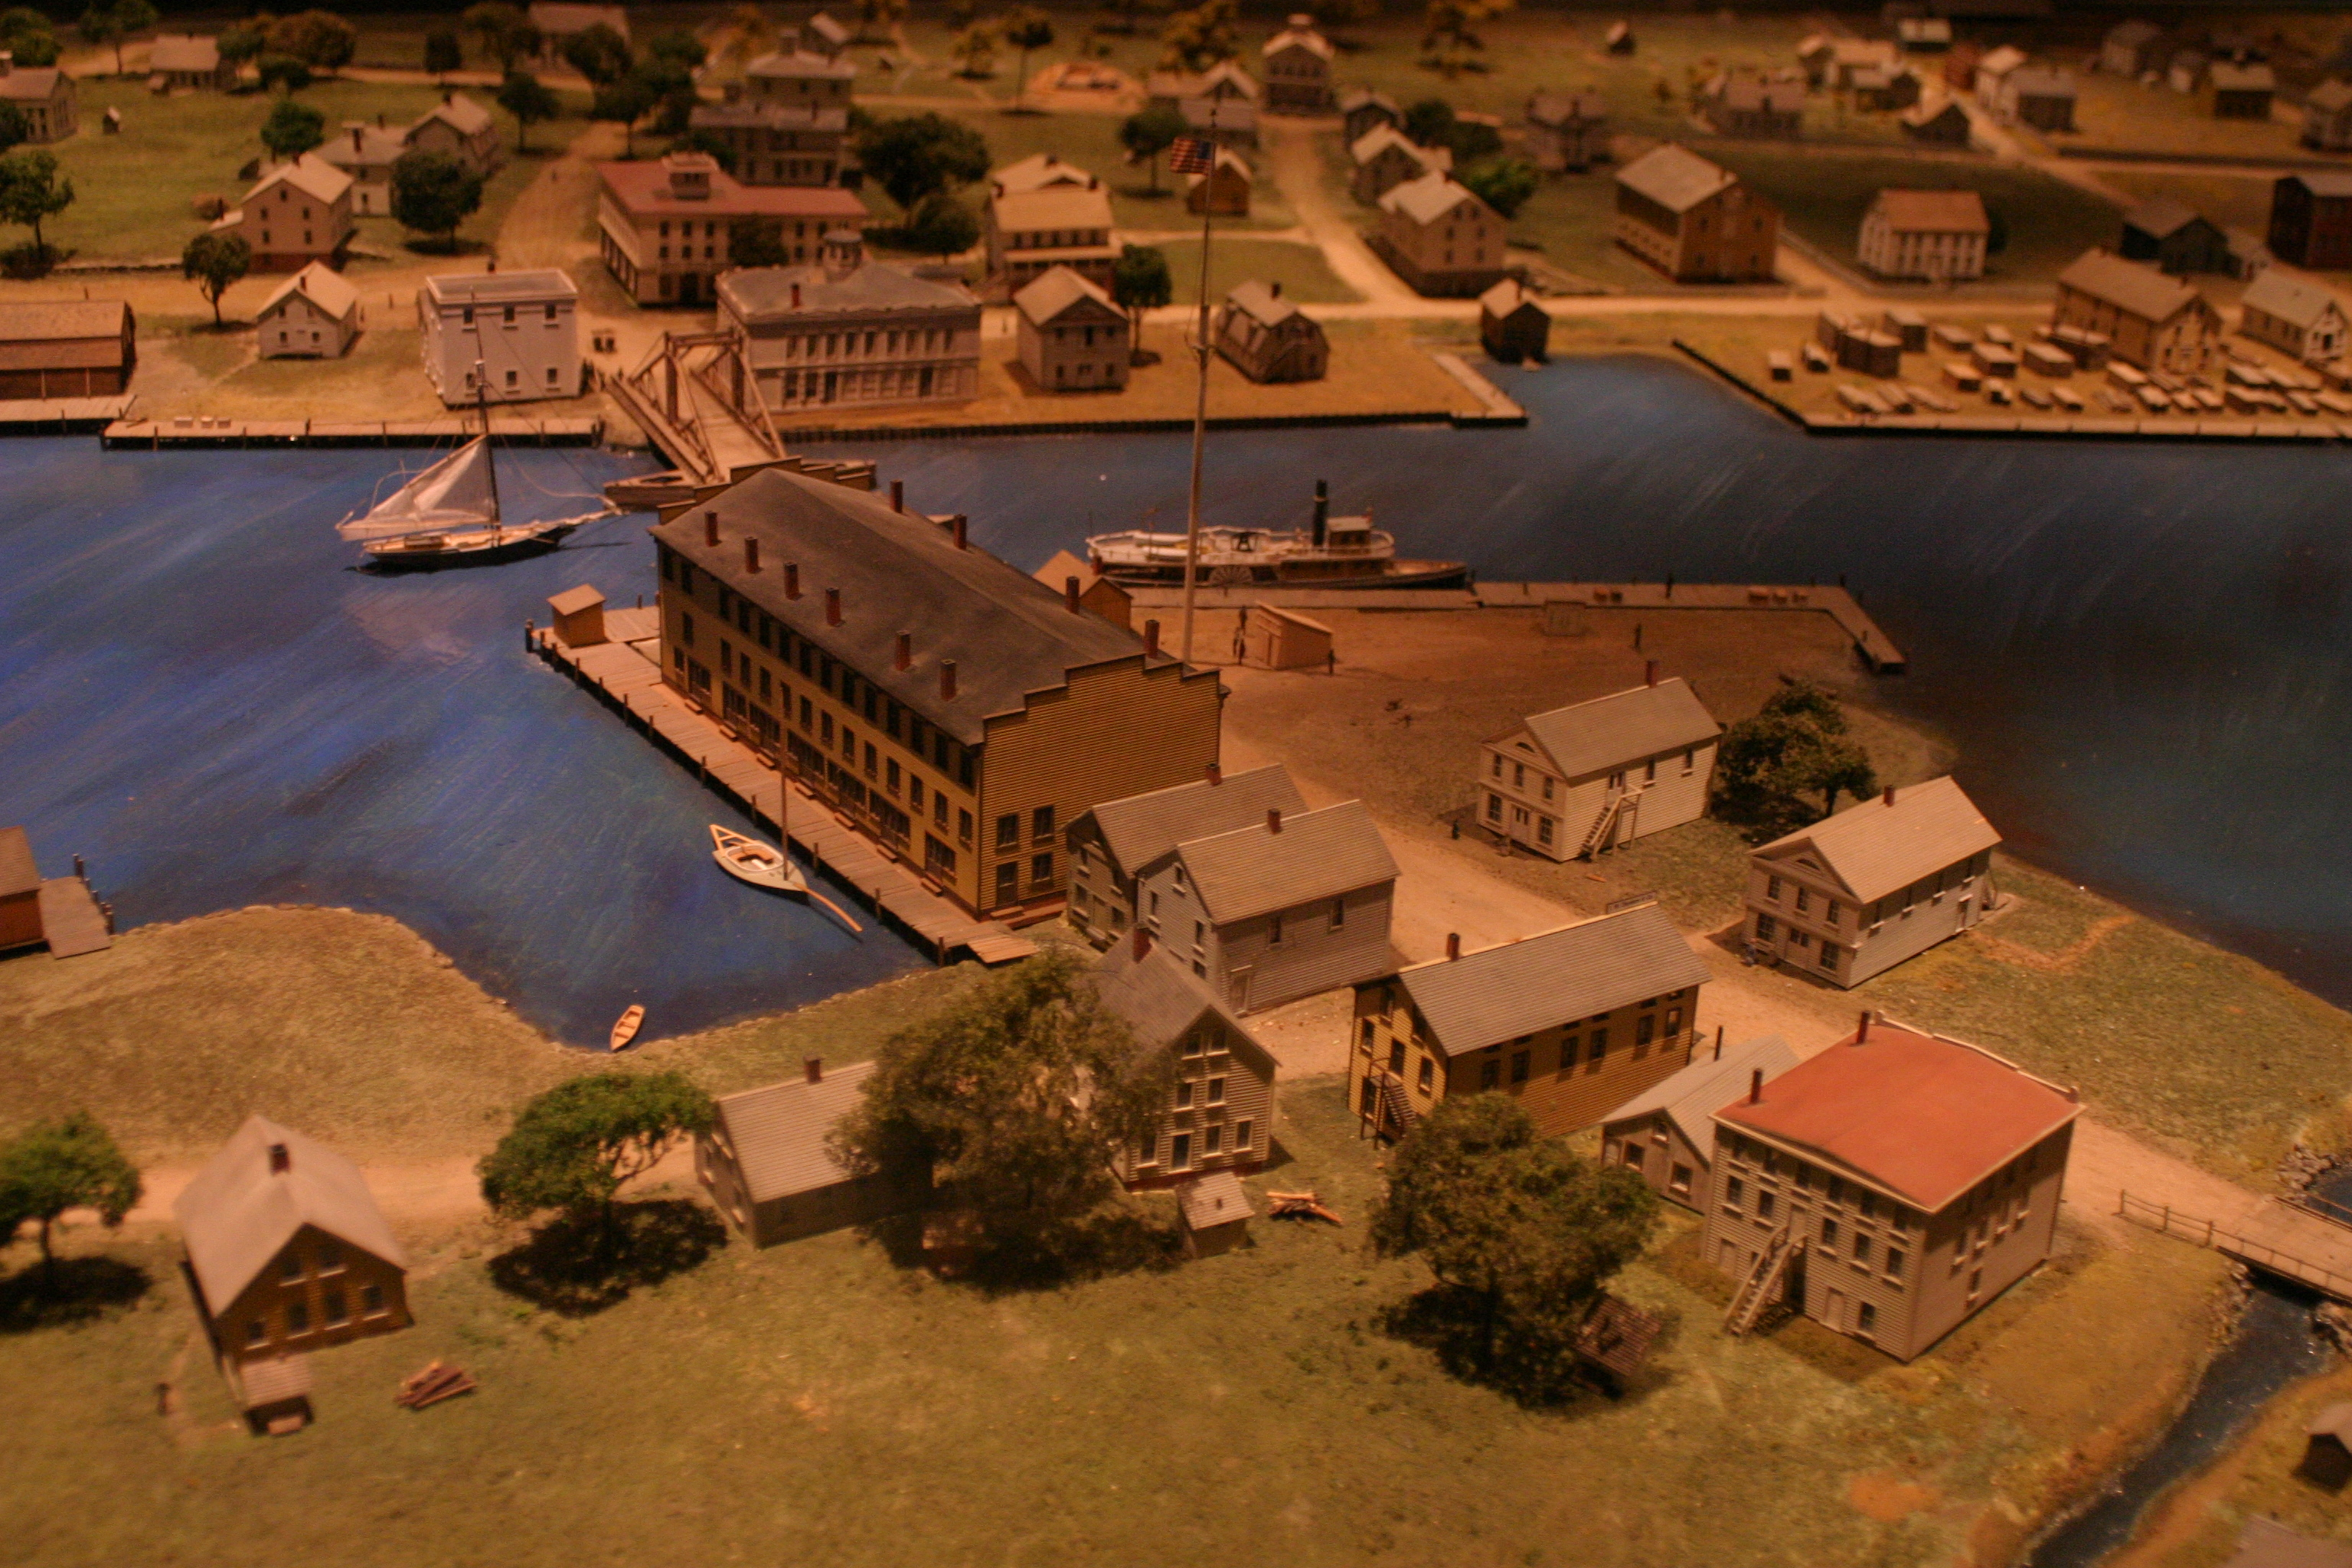 Model at Mystic Seaport, courtesy John Lamar, Flickr